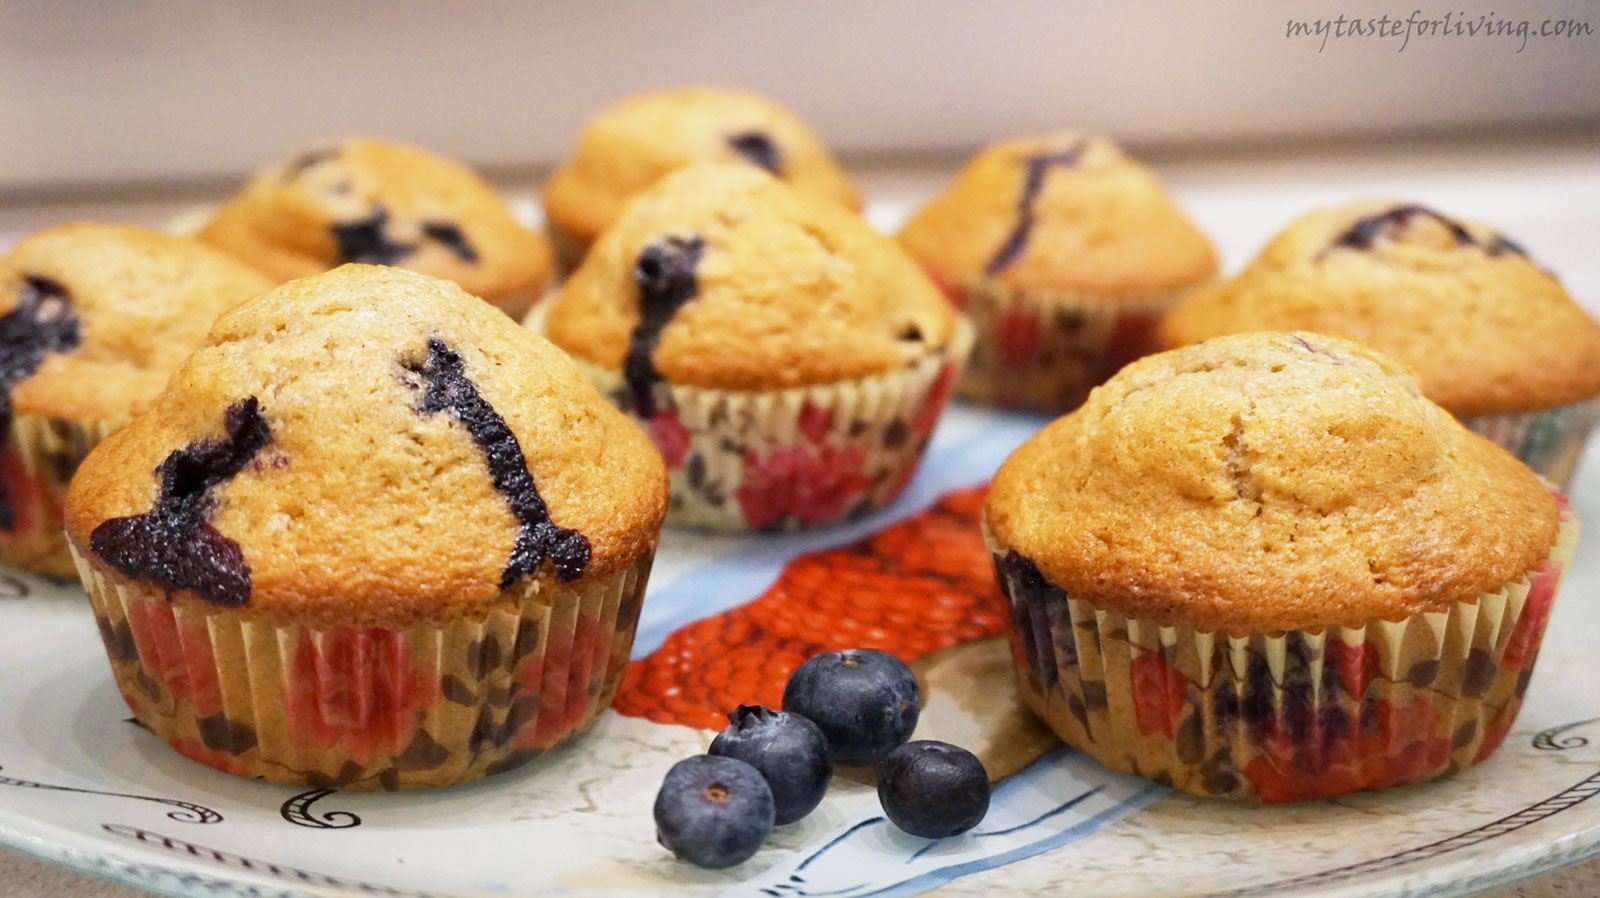 Appetizing and aromatic muffins with fresh blueberries.